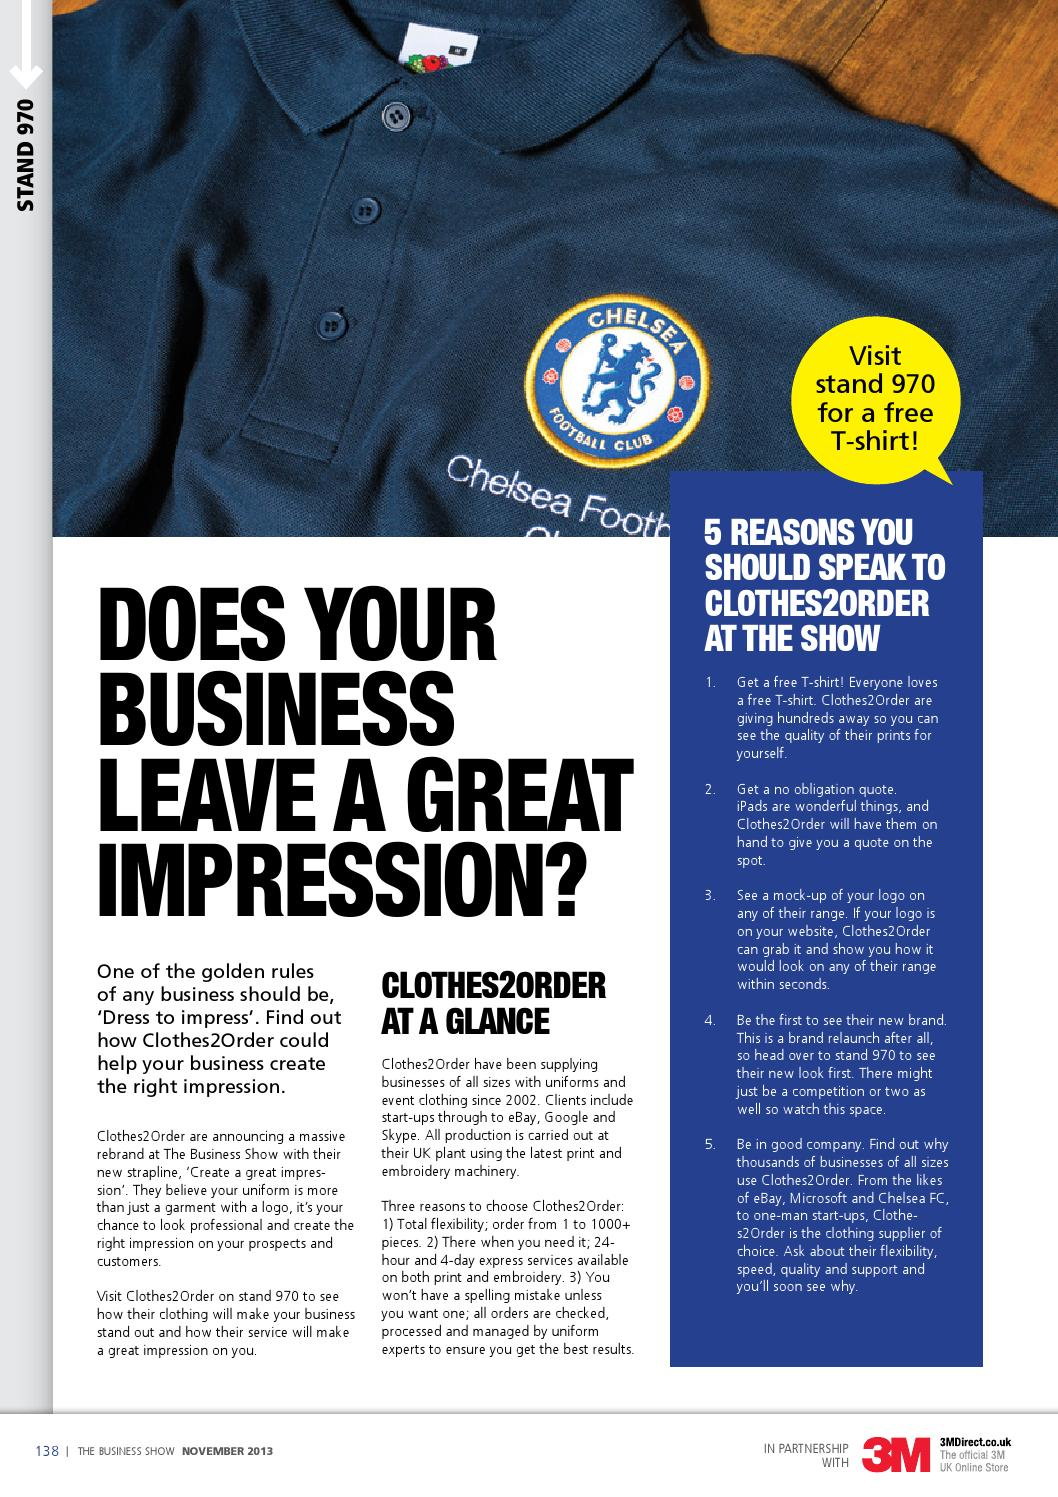 The Business Show Guide November 2013 by Prysm Group - issuu